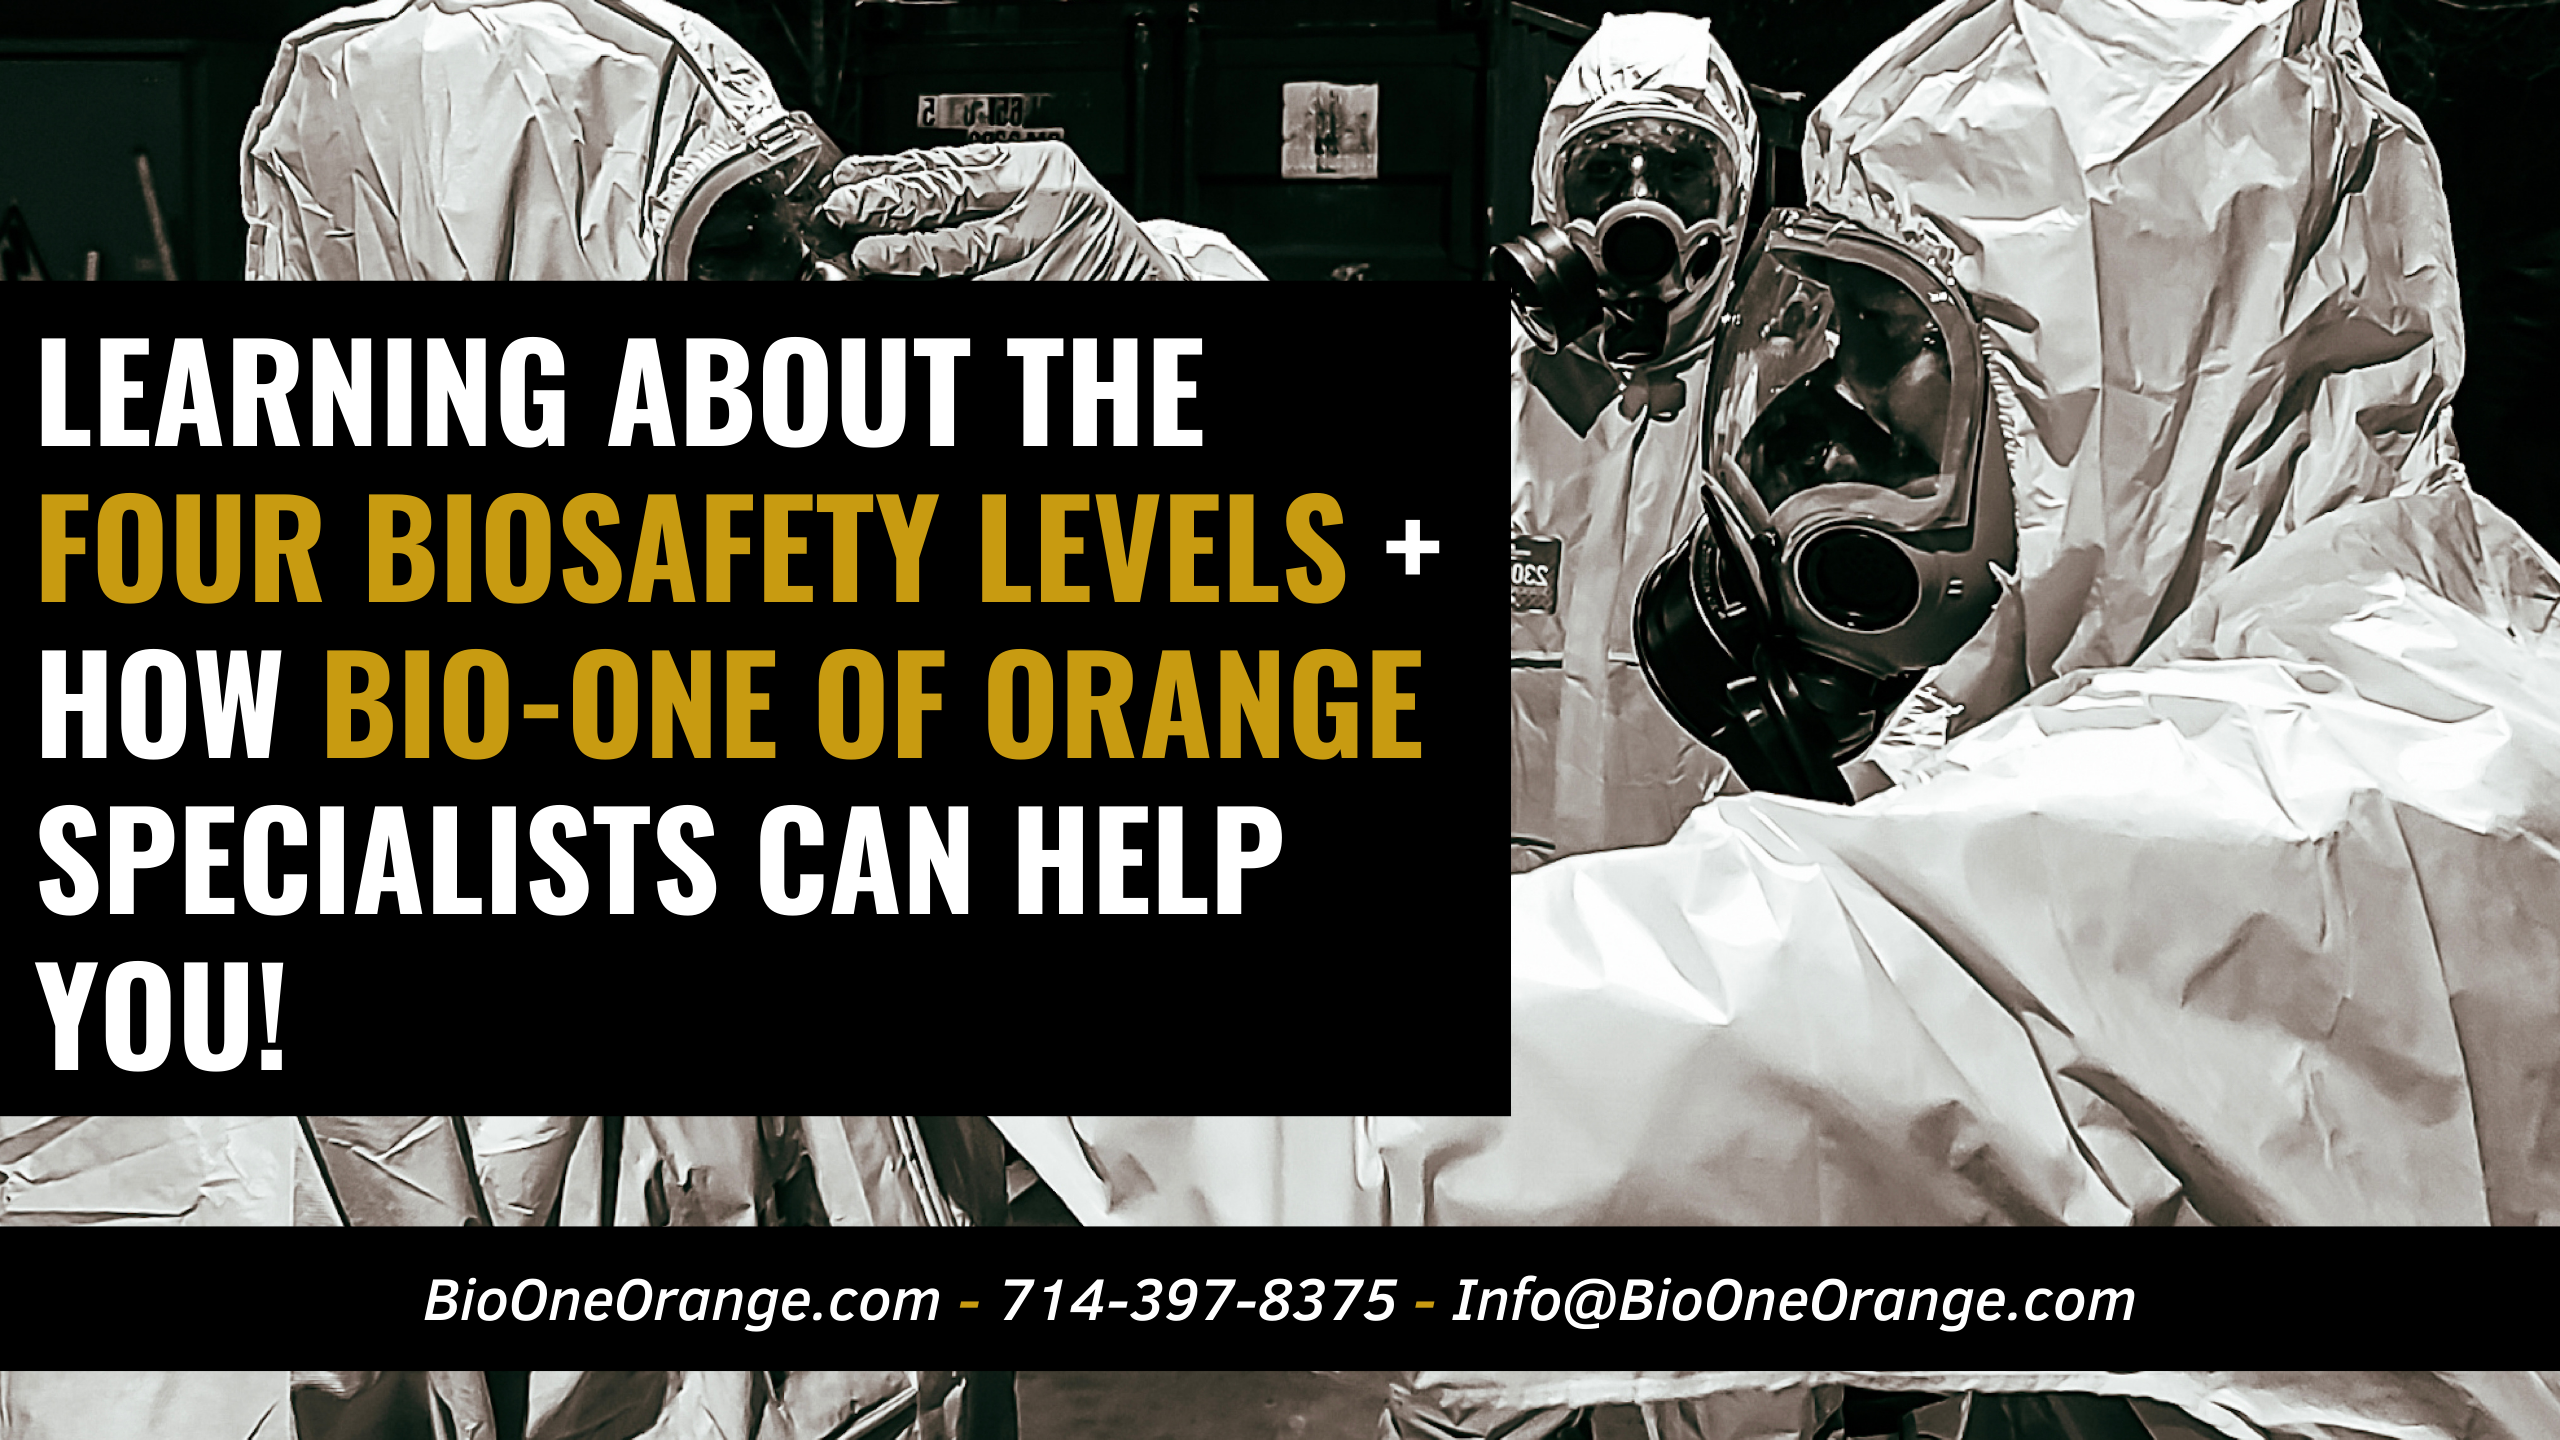 Learning about the 4 Biosafety Levels + How Bio-One of Orange specialists can help you!